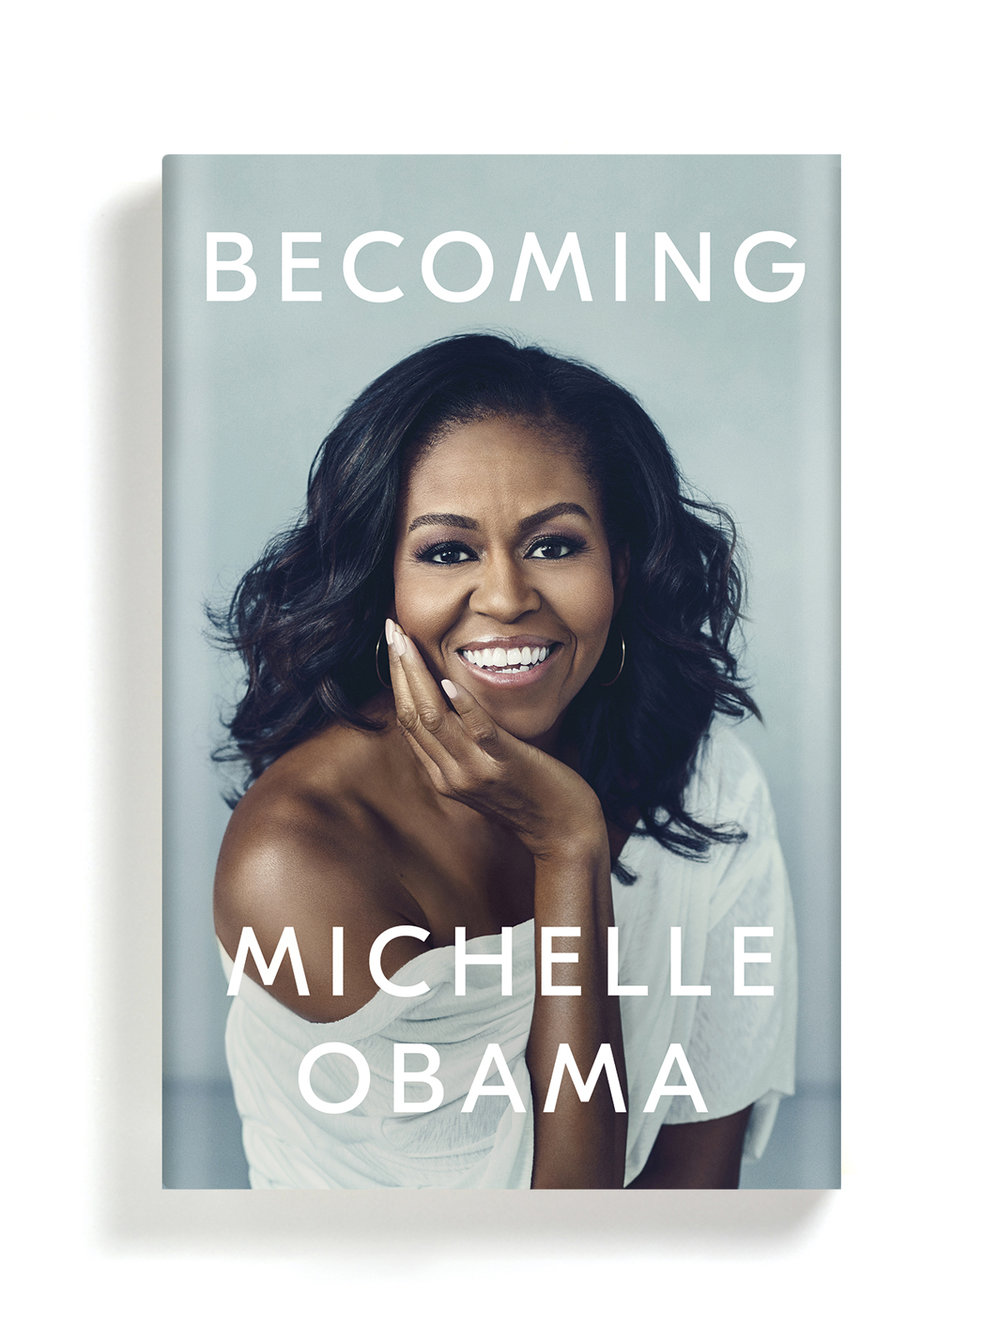 le prochain livre de michelle obama. Credit photo: becomingmichelleobama.com